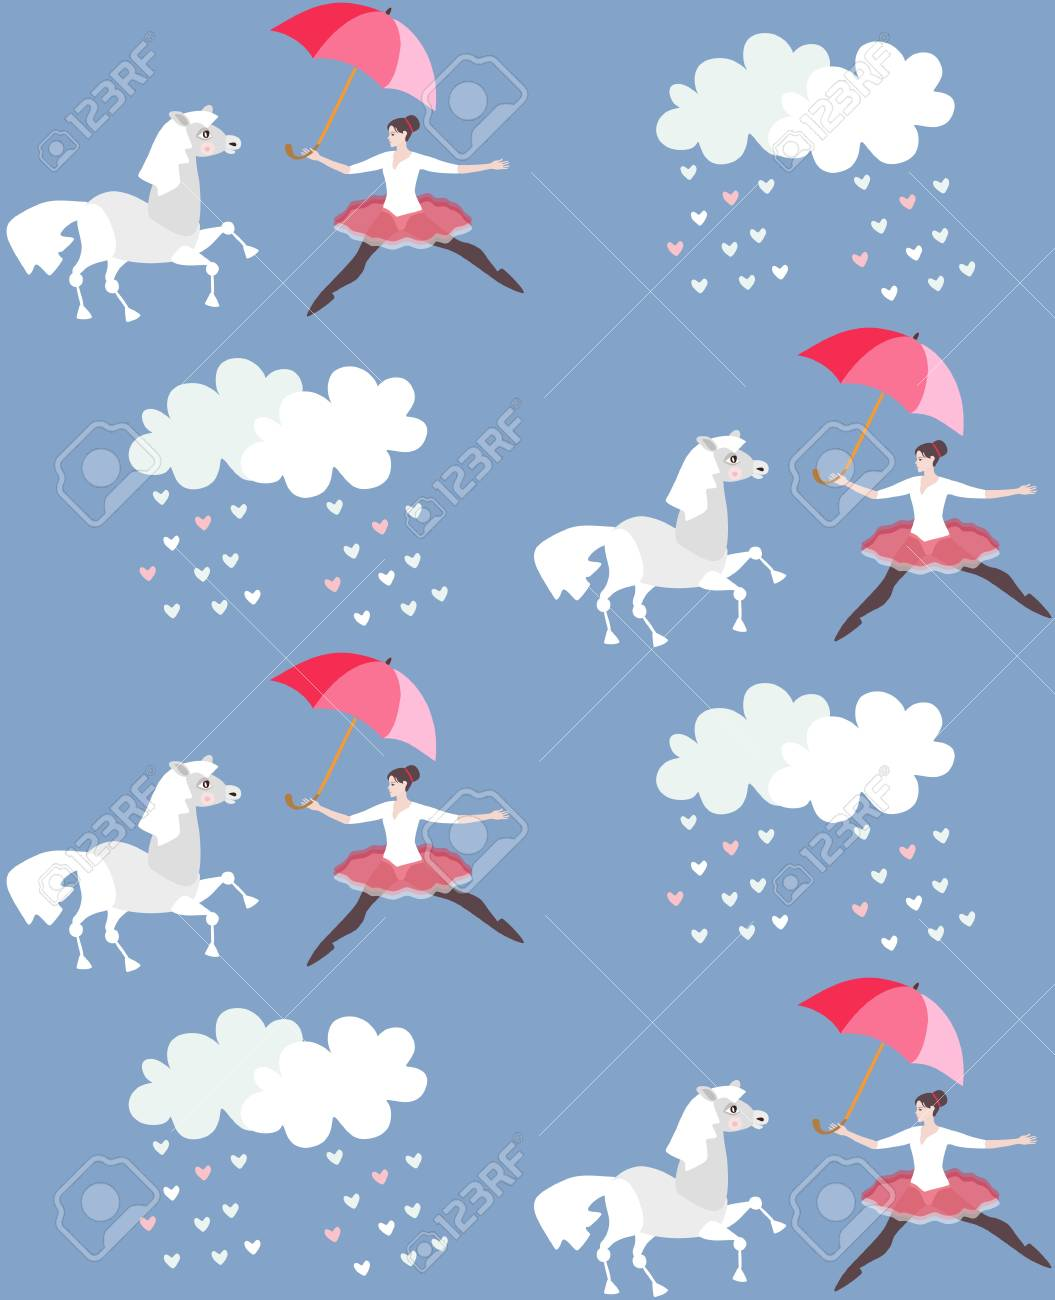 Endless Print For Fabric Or Wallpaper Funny Ballerina With Umbrella Royalty Free Cliparts Vectors And Stock Illustration Image 100807356